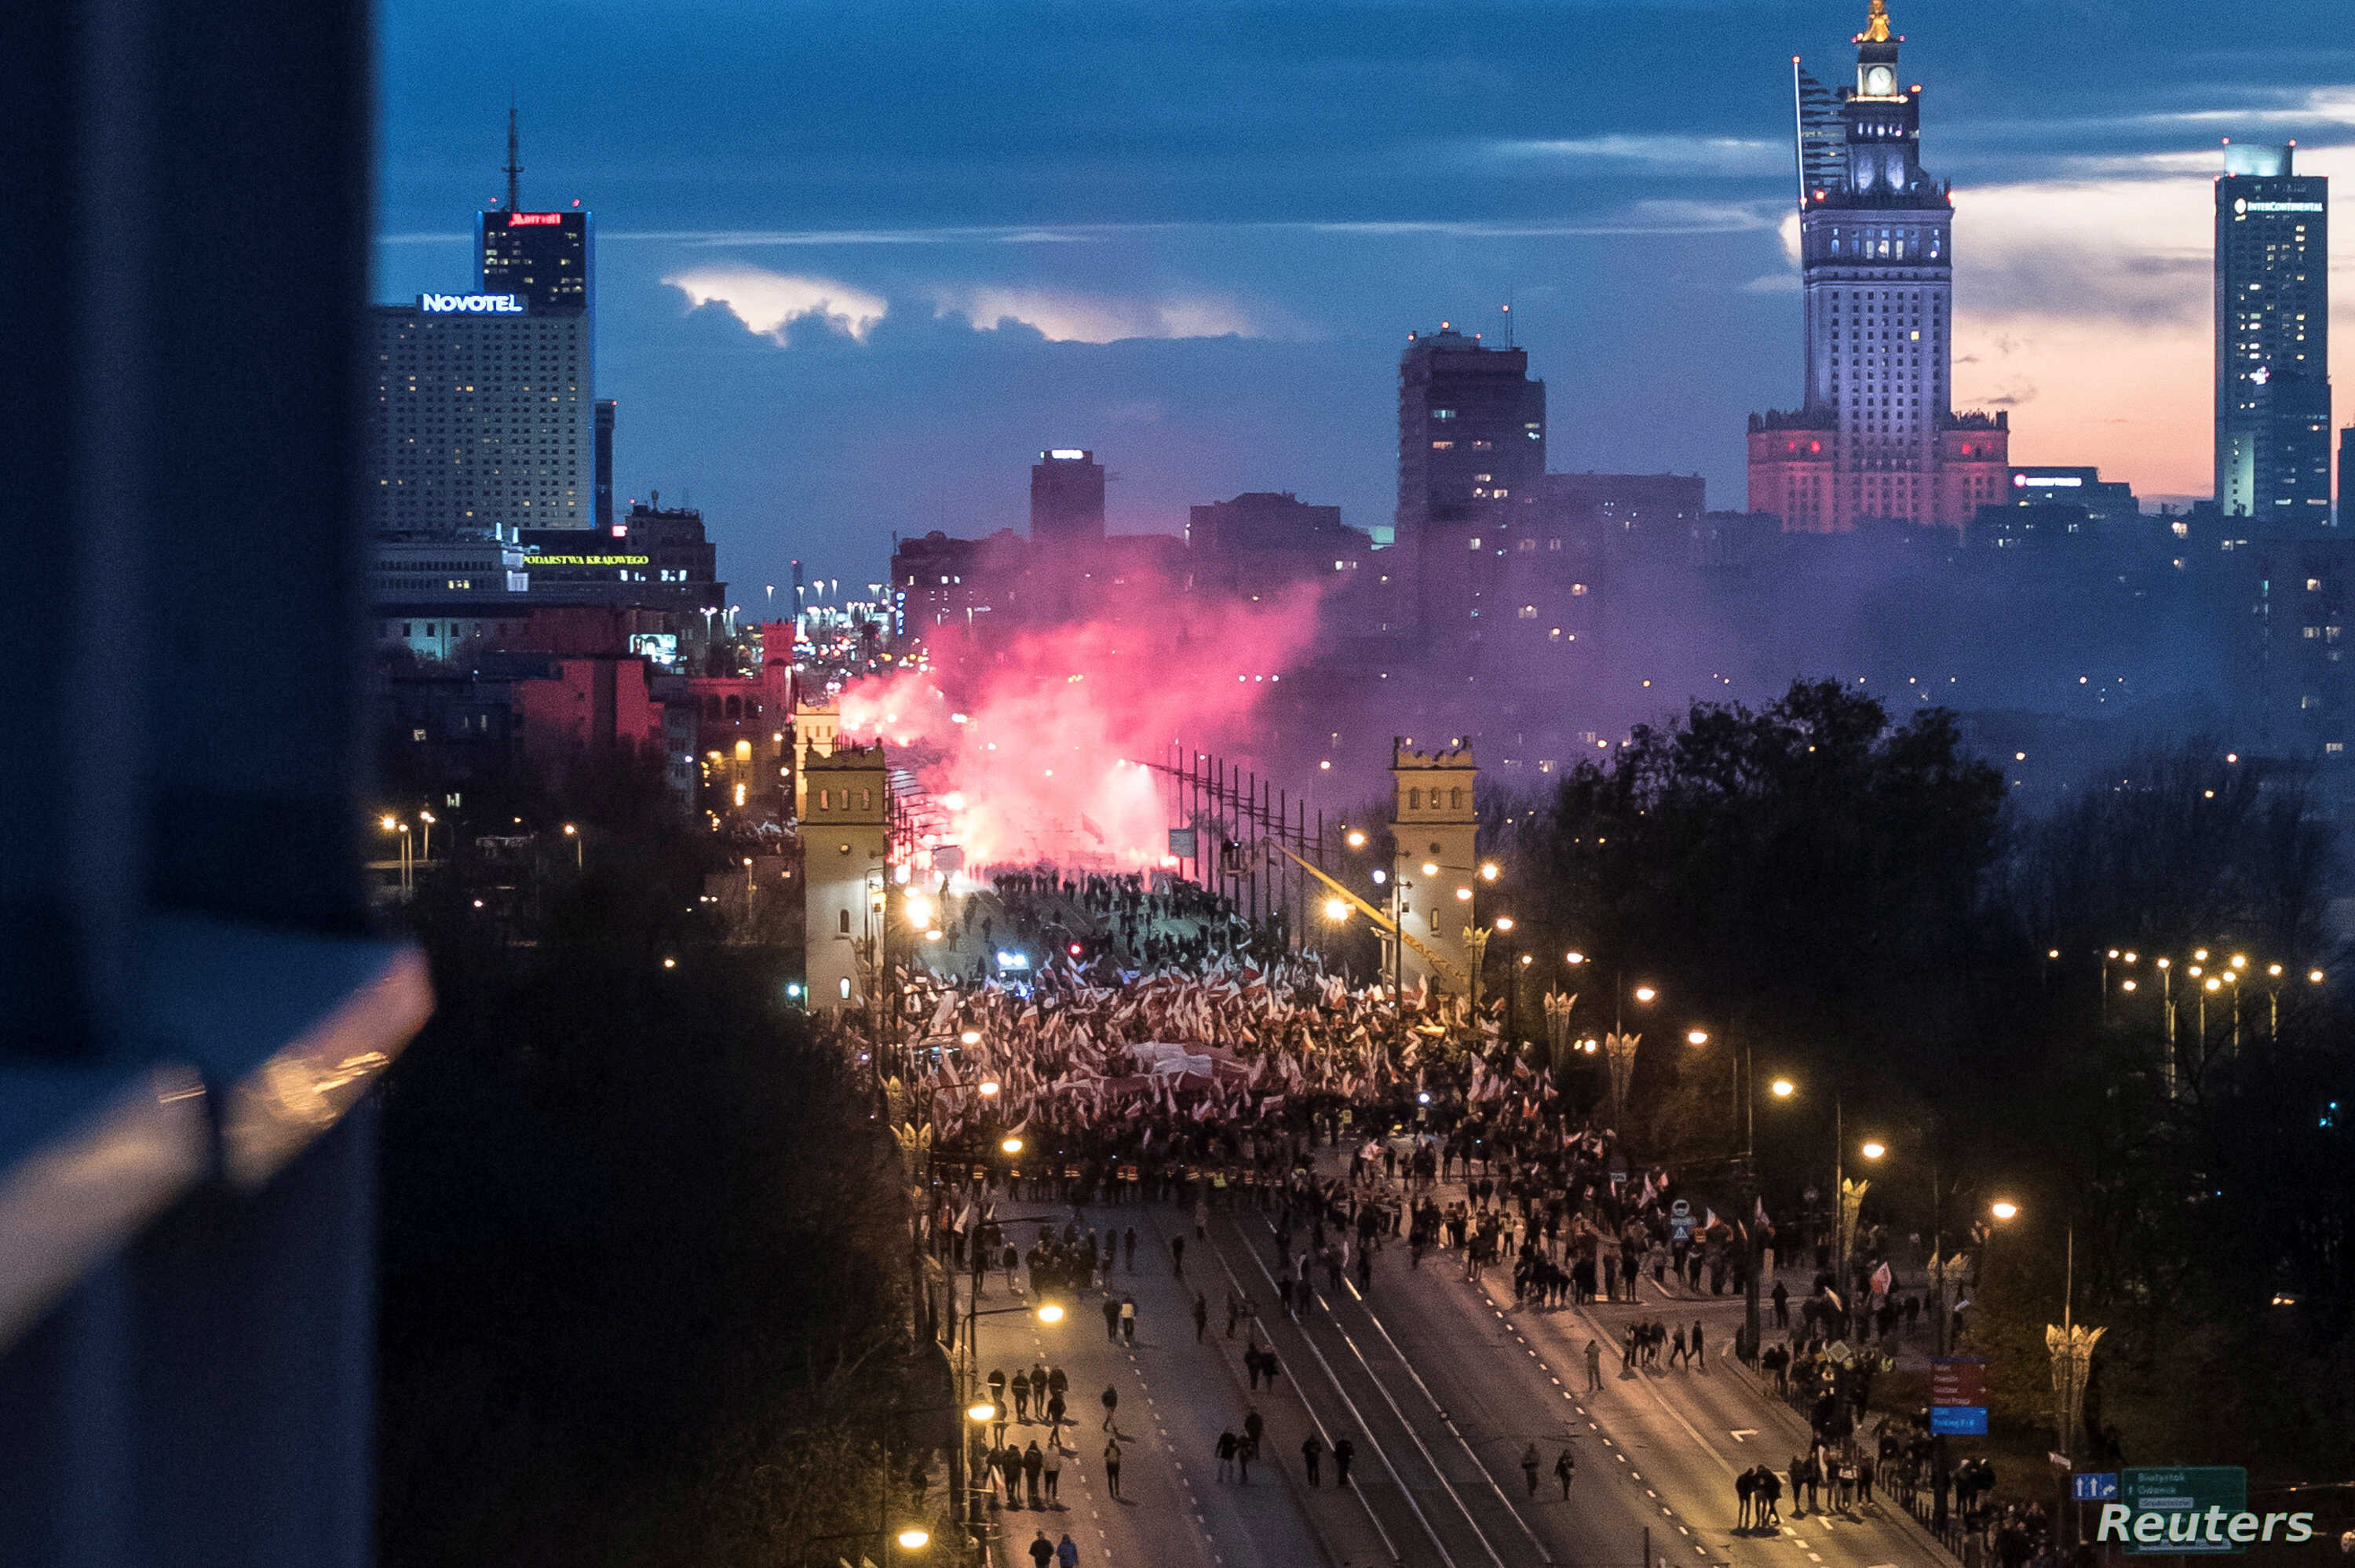 Protesters march during a rally, organized by far-right, nationalist groups, to mark 99th anniversary of Polish independence in Warsaw,  Nov.11, 2017.